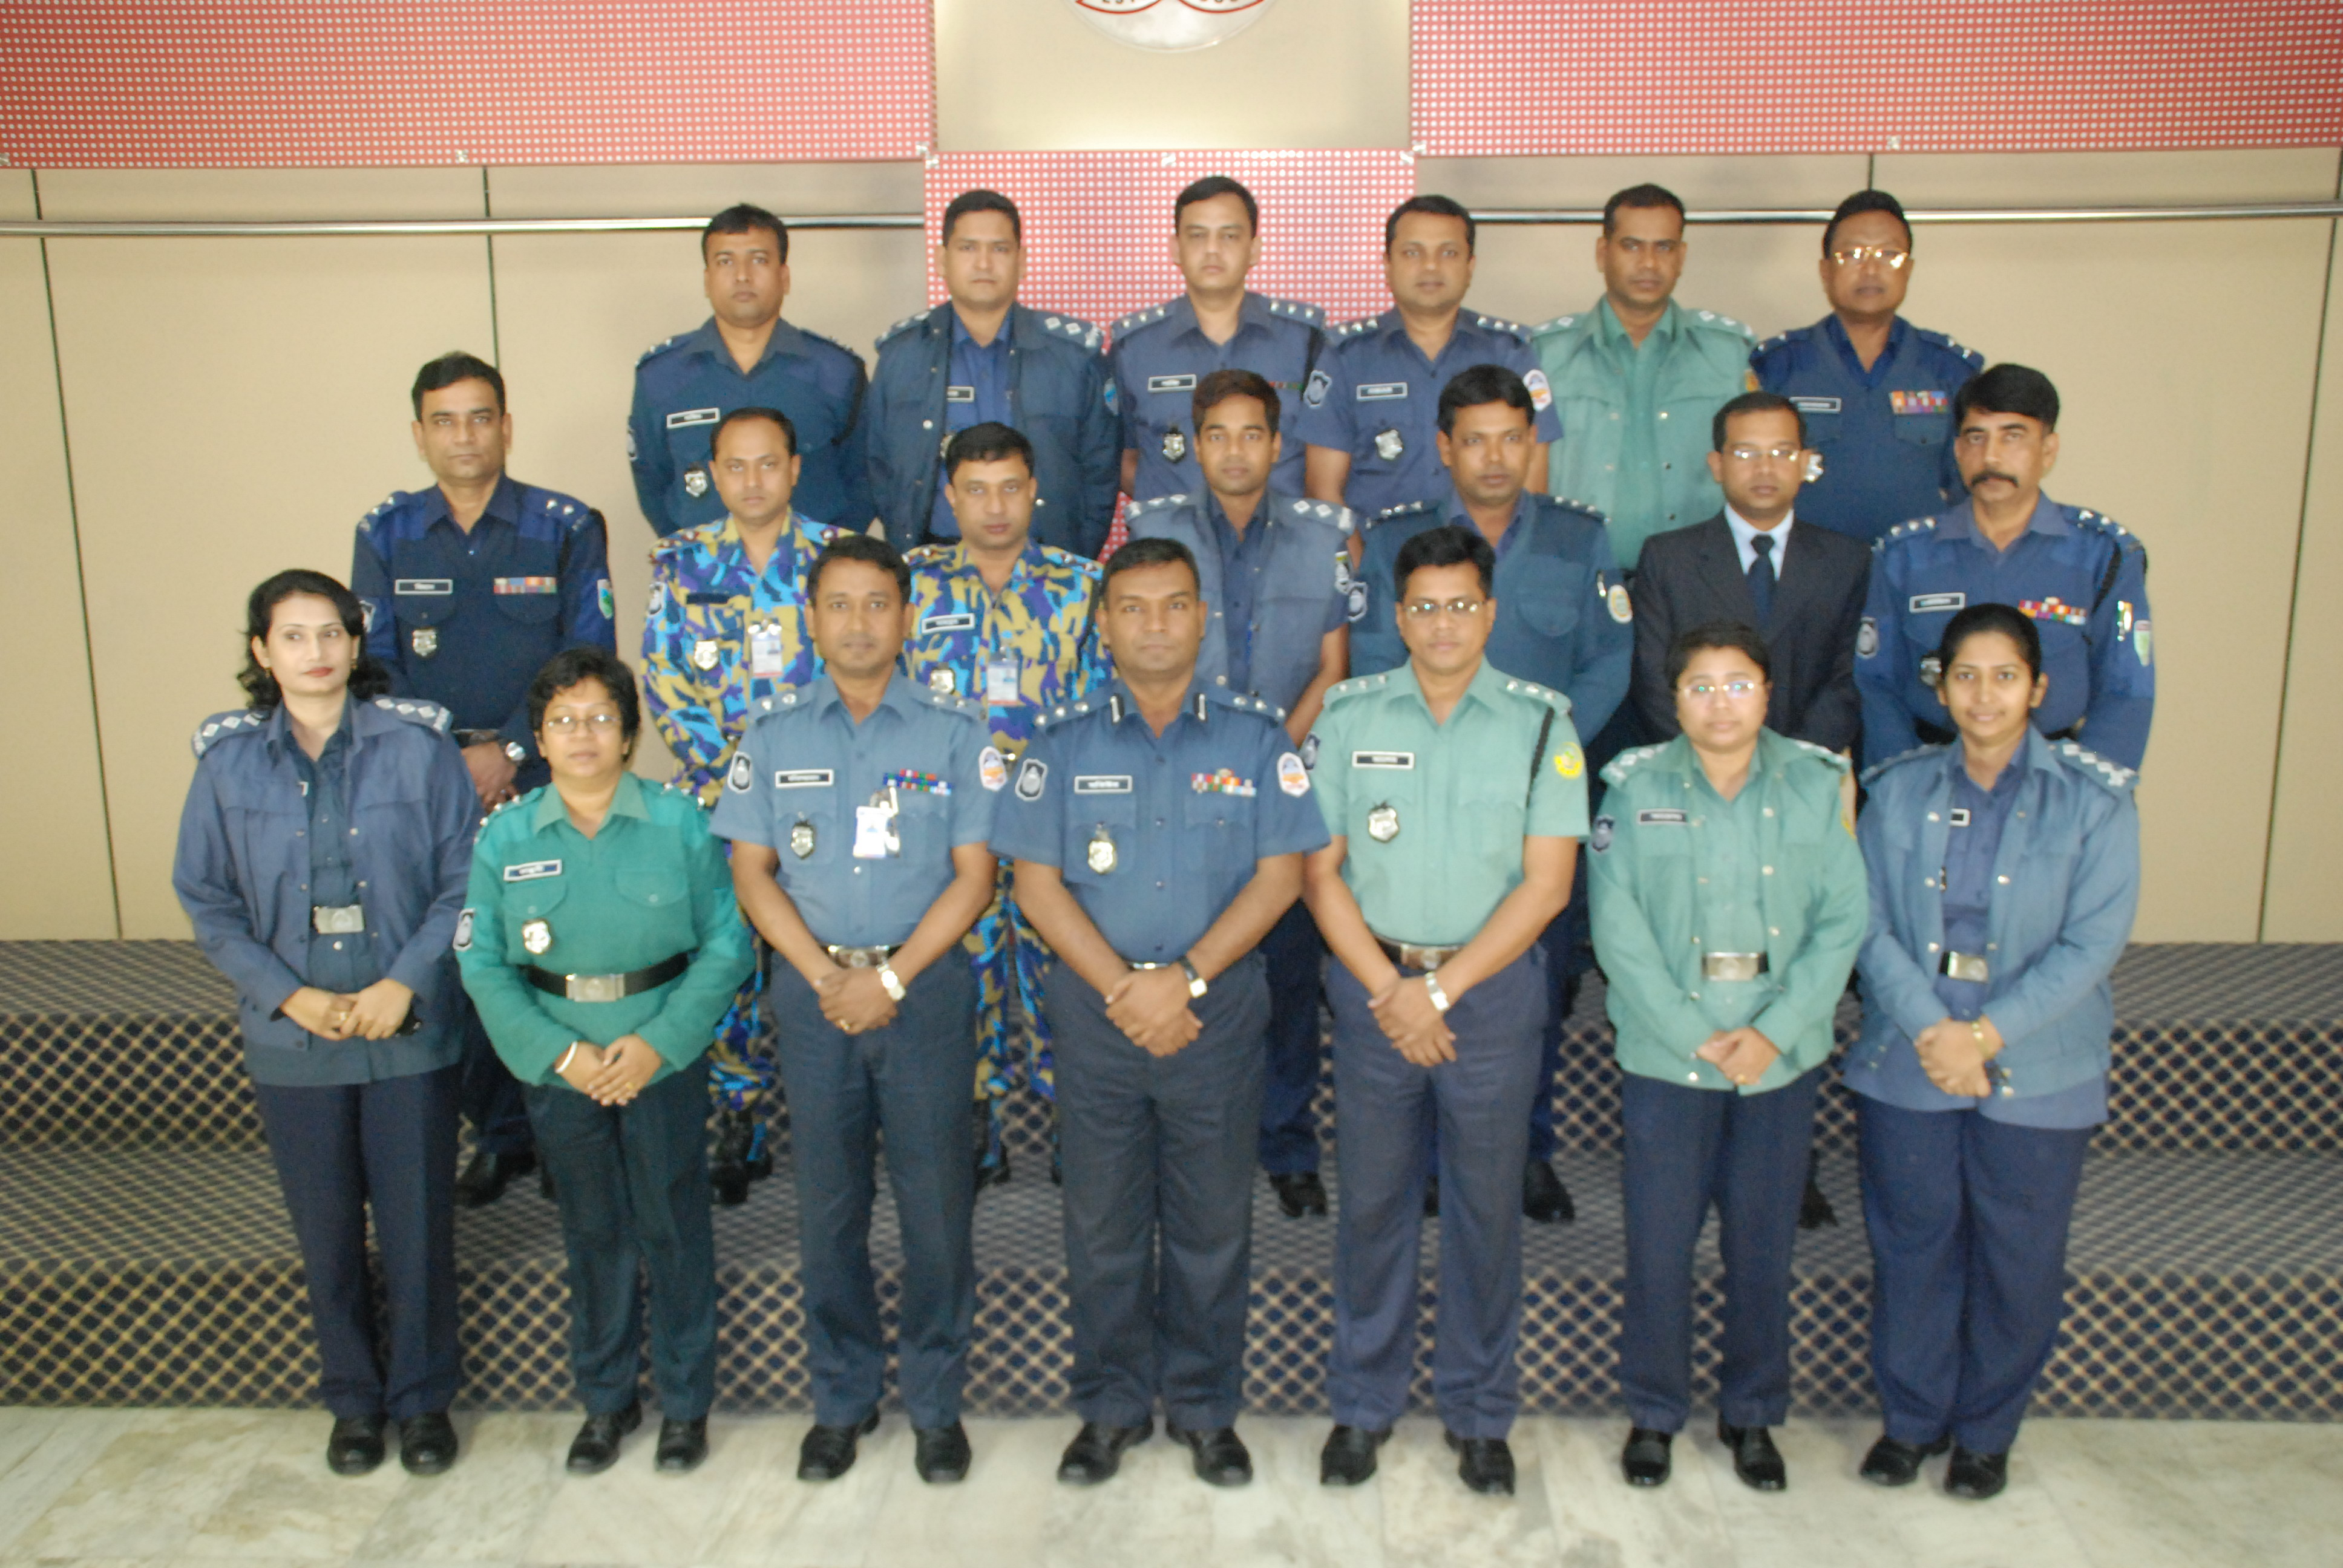 Participant of 15th Police Management Certificate Course.